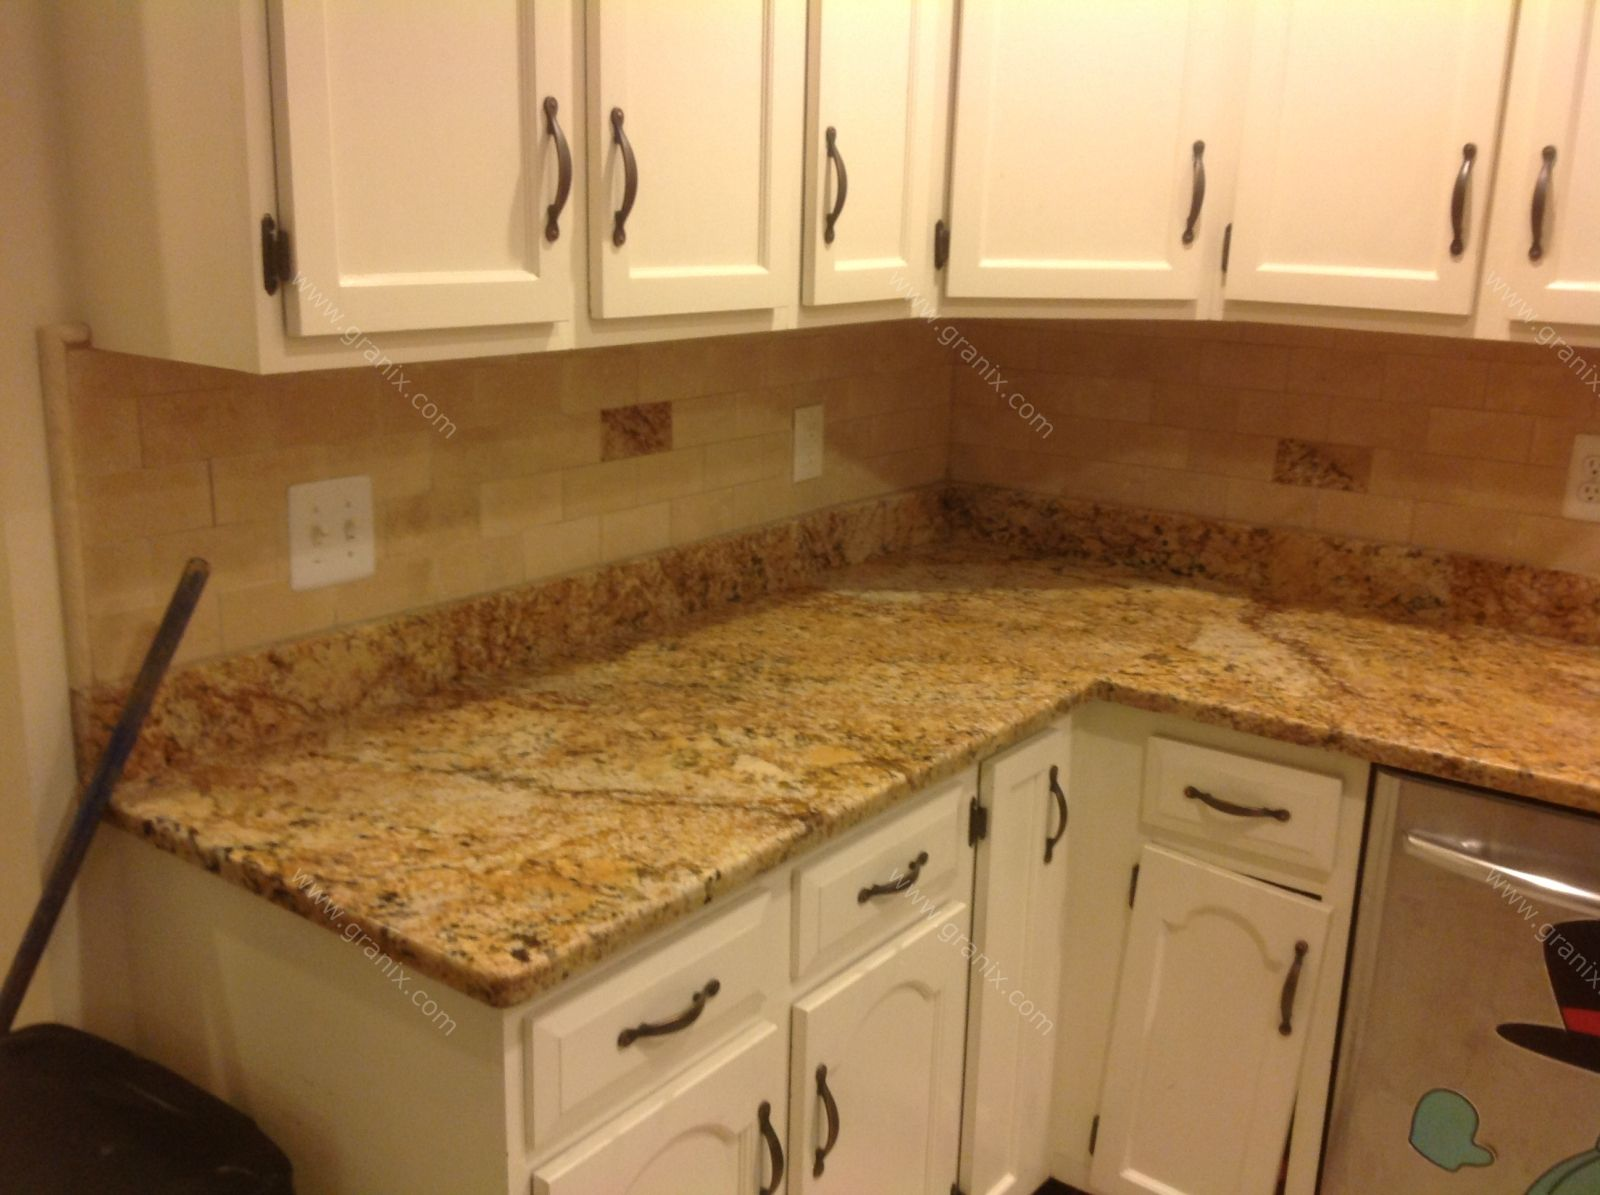 Backsplash Ideas For Granite Countertops | Leave A Reply Cancel Reply